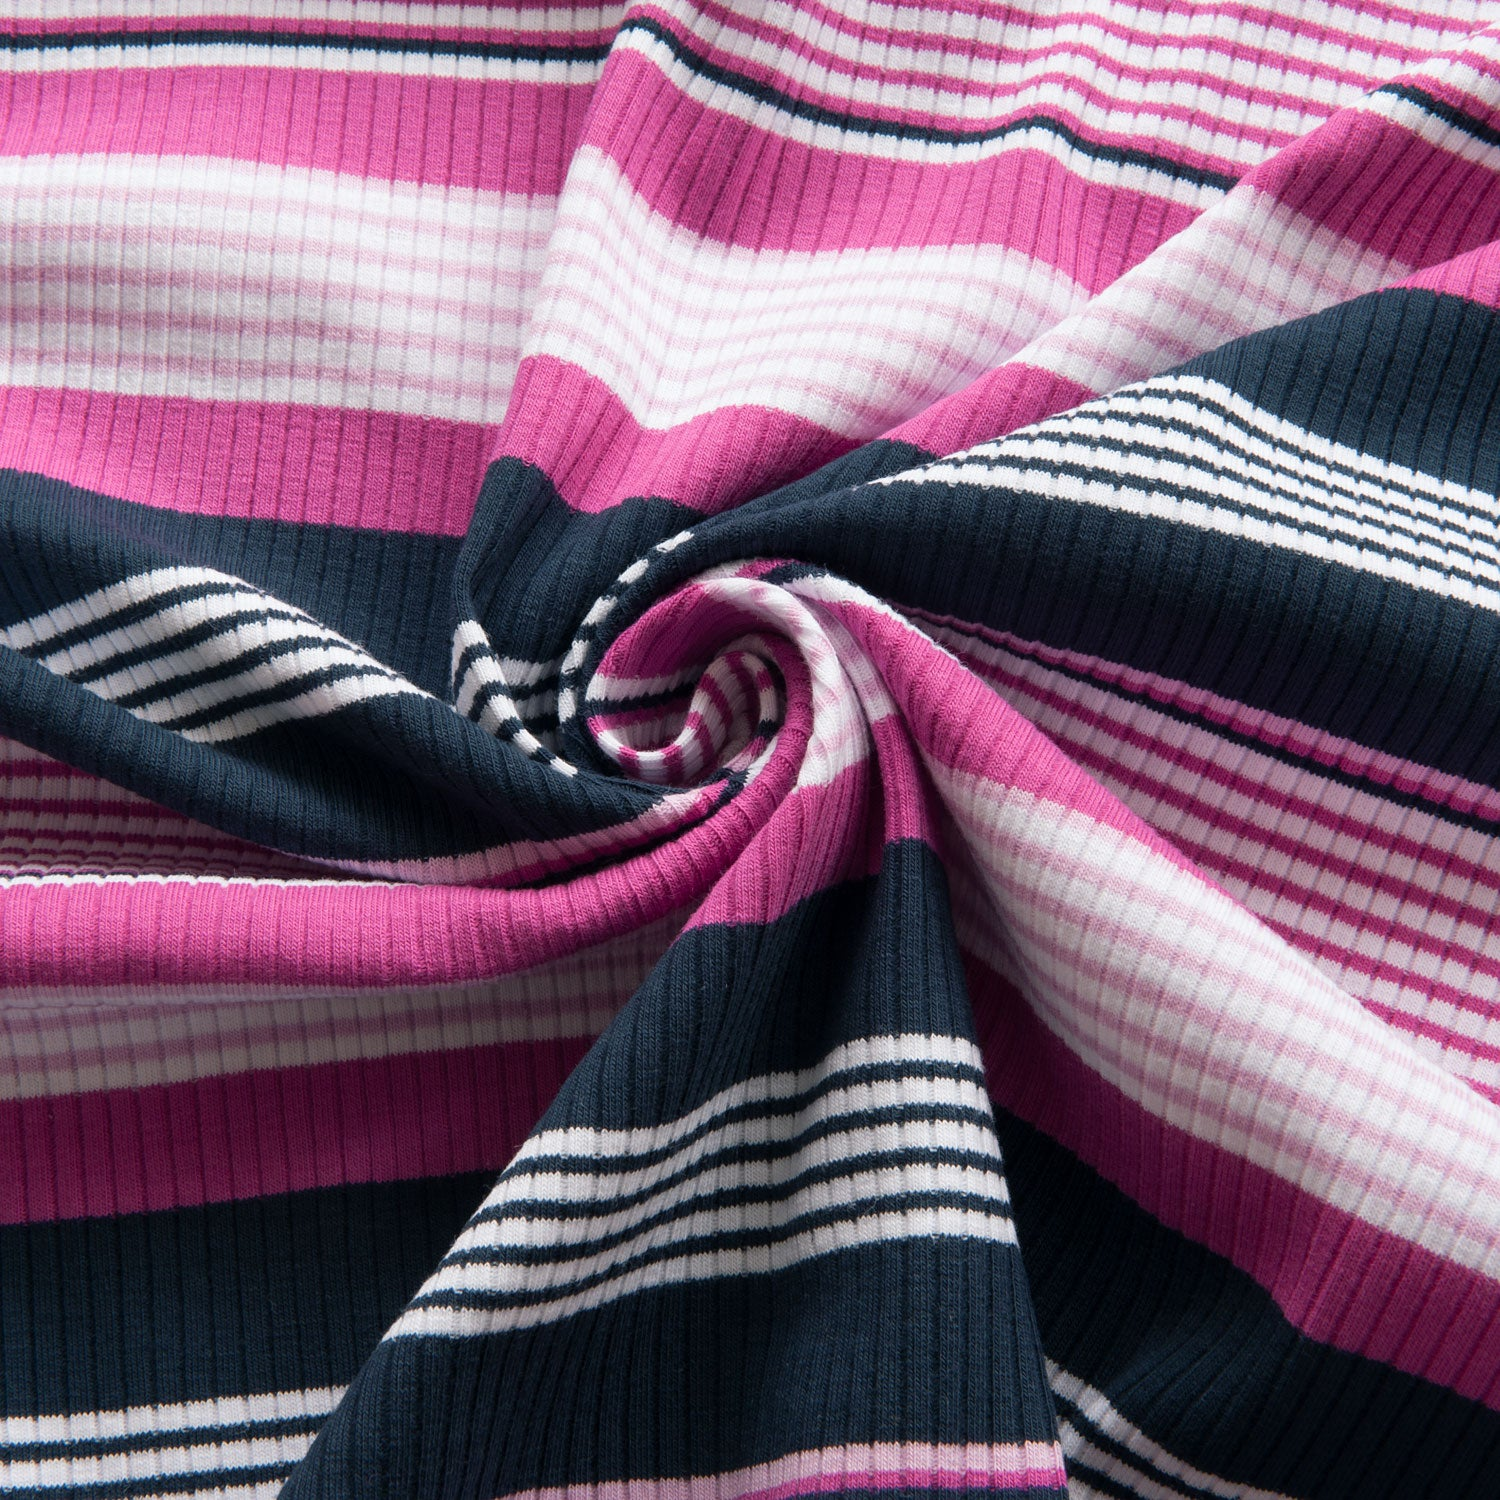 Ribbed Striped Jersey in Pink - 1.8m Piece